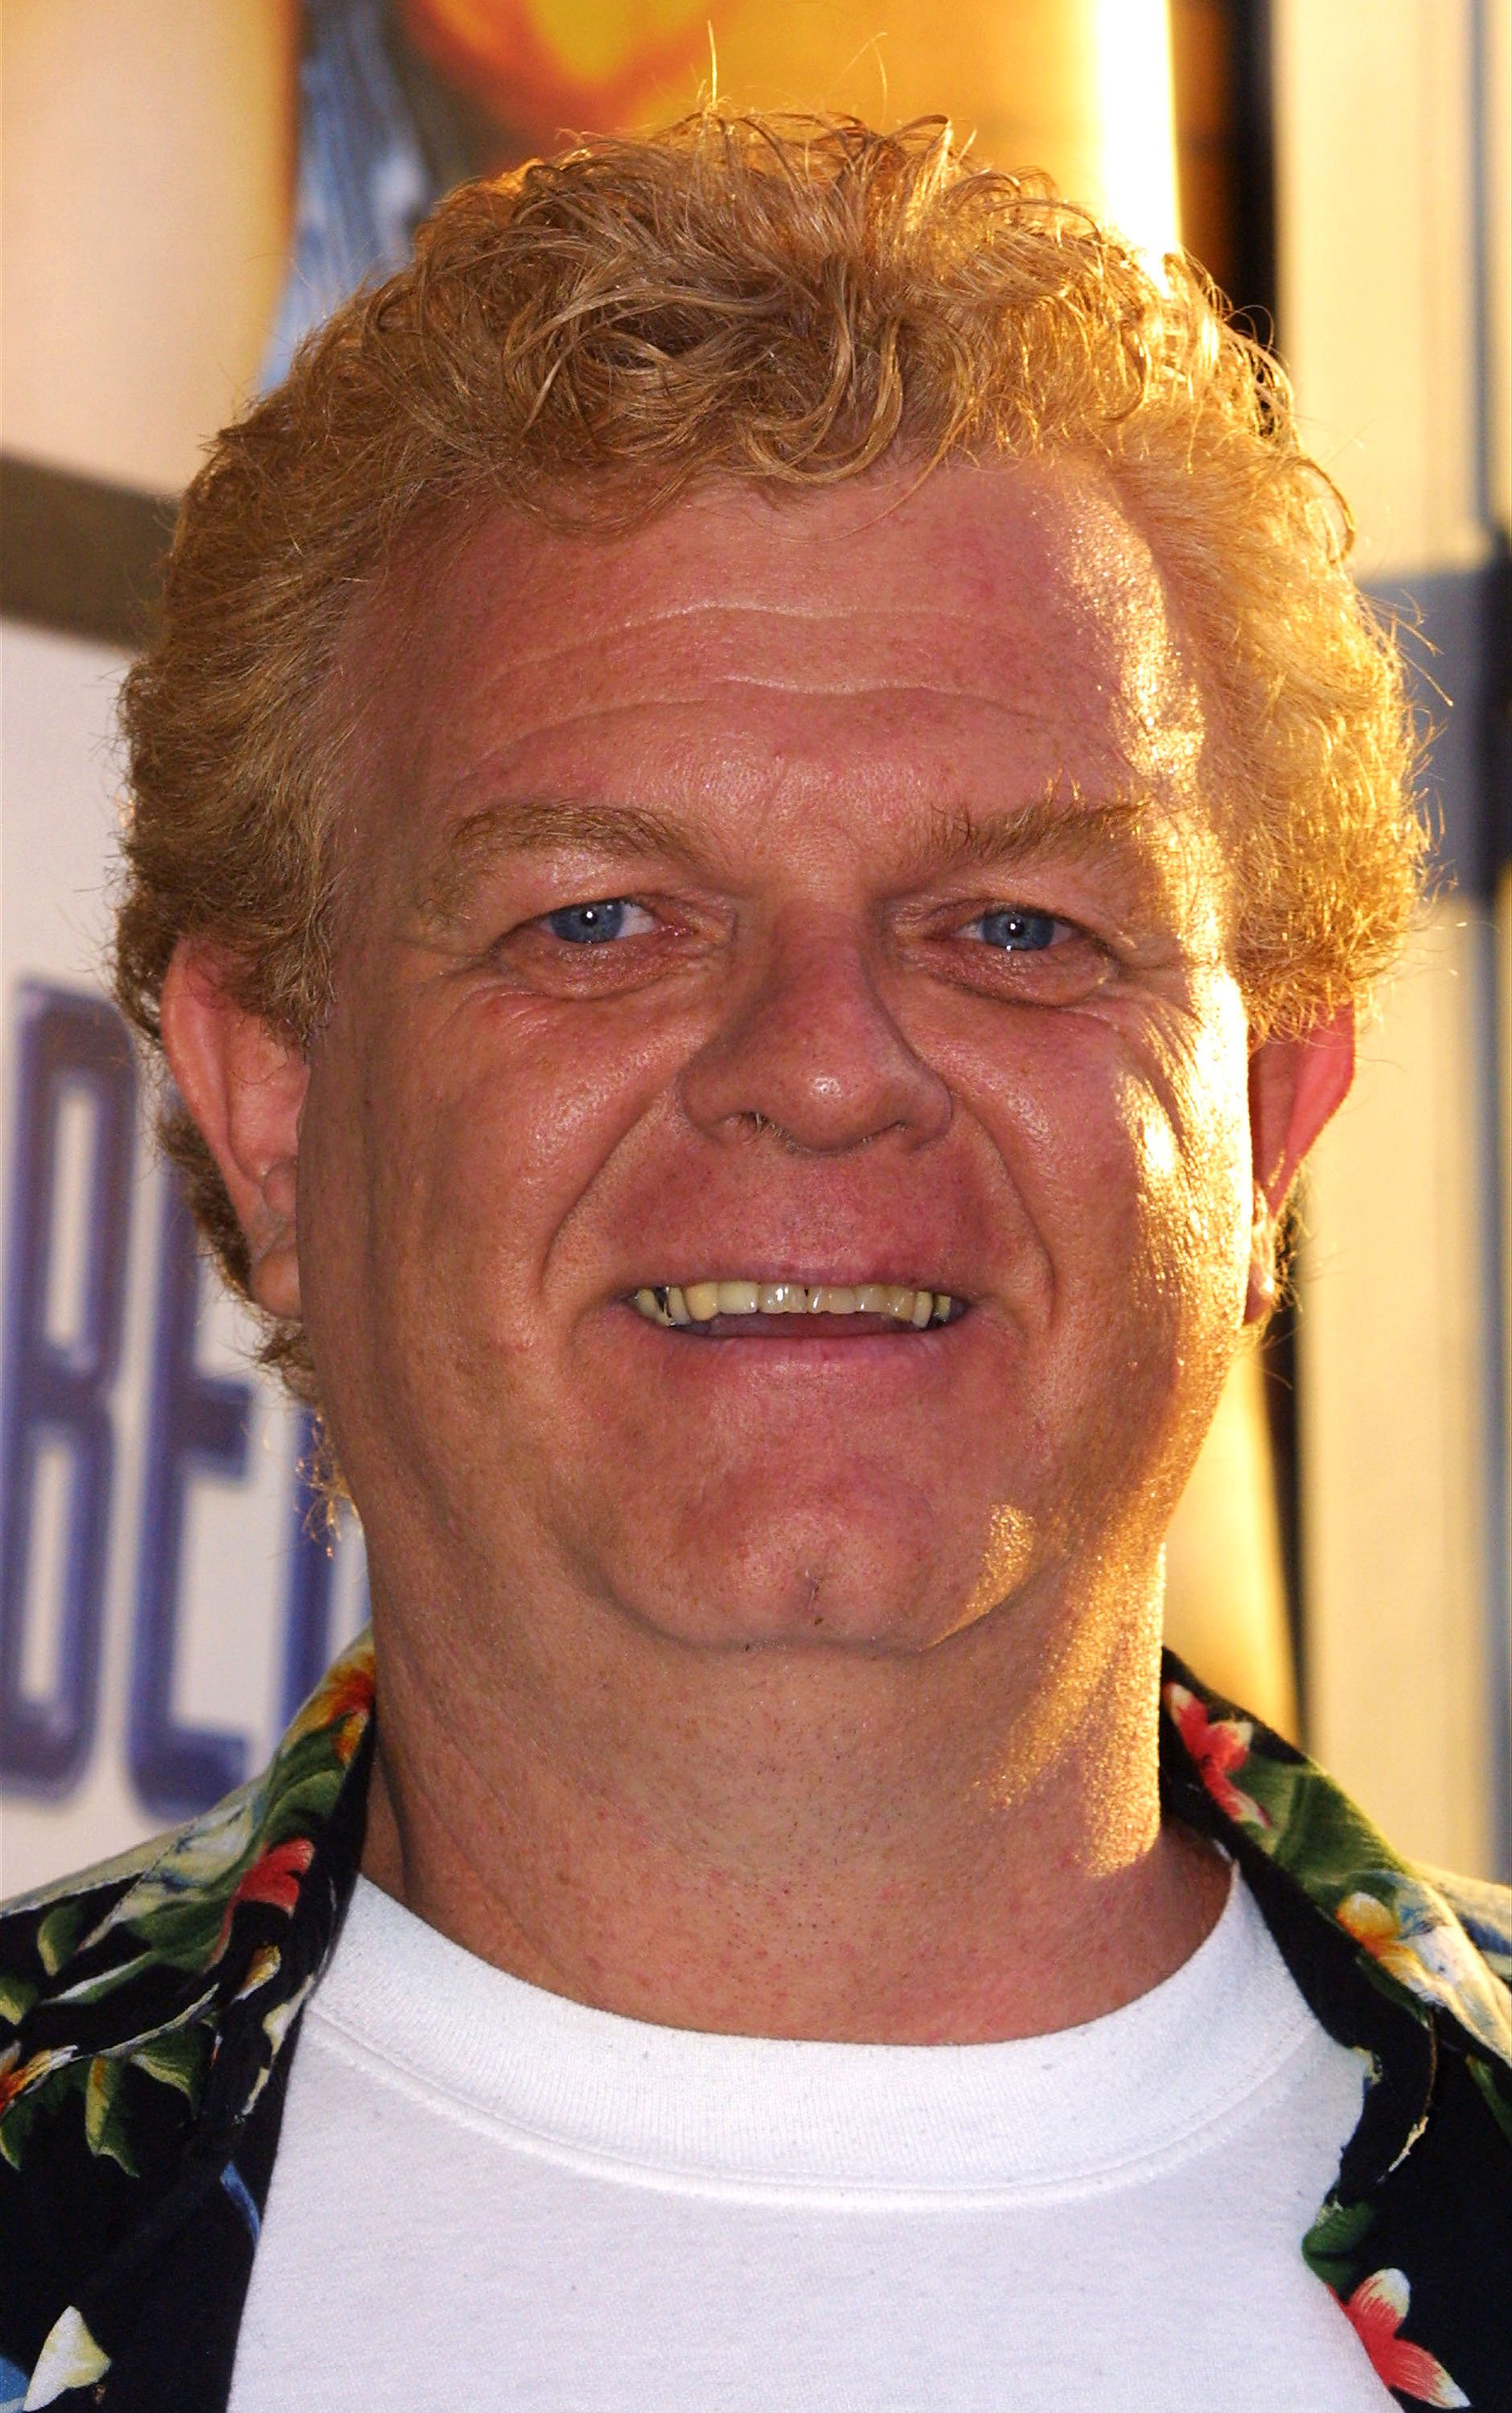 Johnny Whitaker attends the film premiere of 'Dickie Roberts' at the Cinerama Dome in 2003. Photo: Getty Images/GlobalImagesUkraine